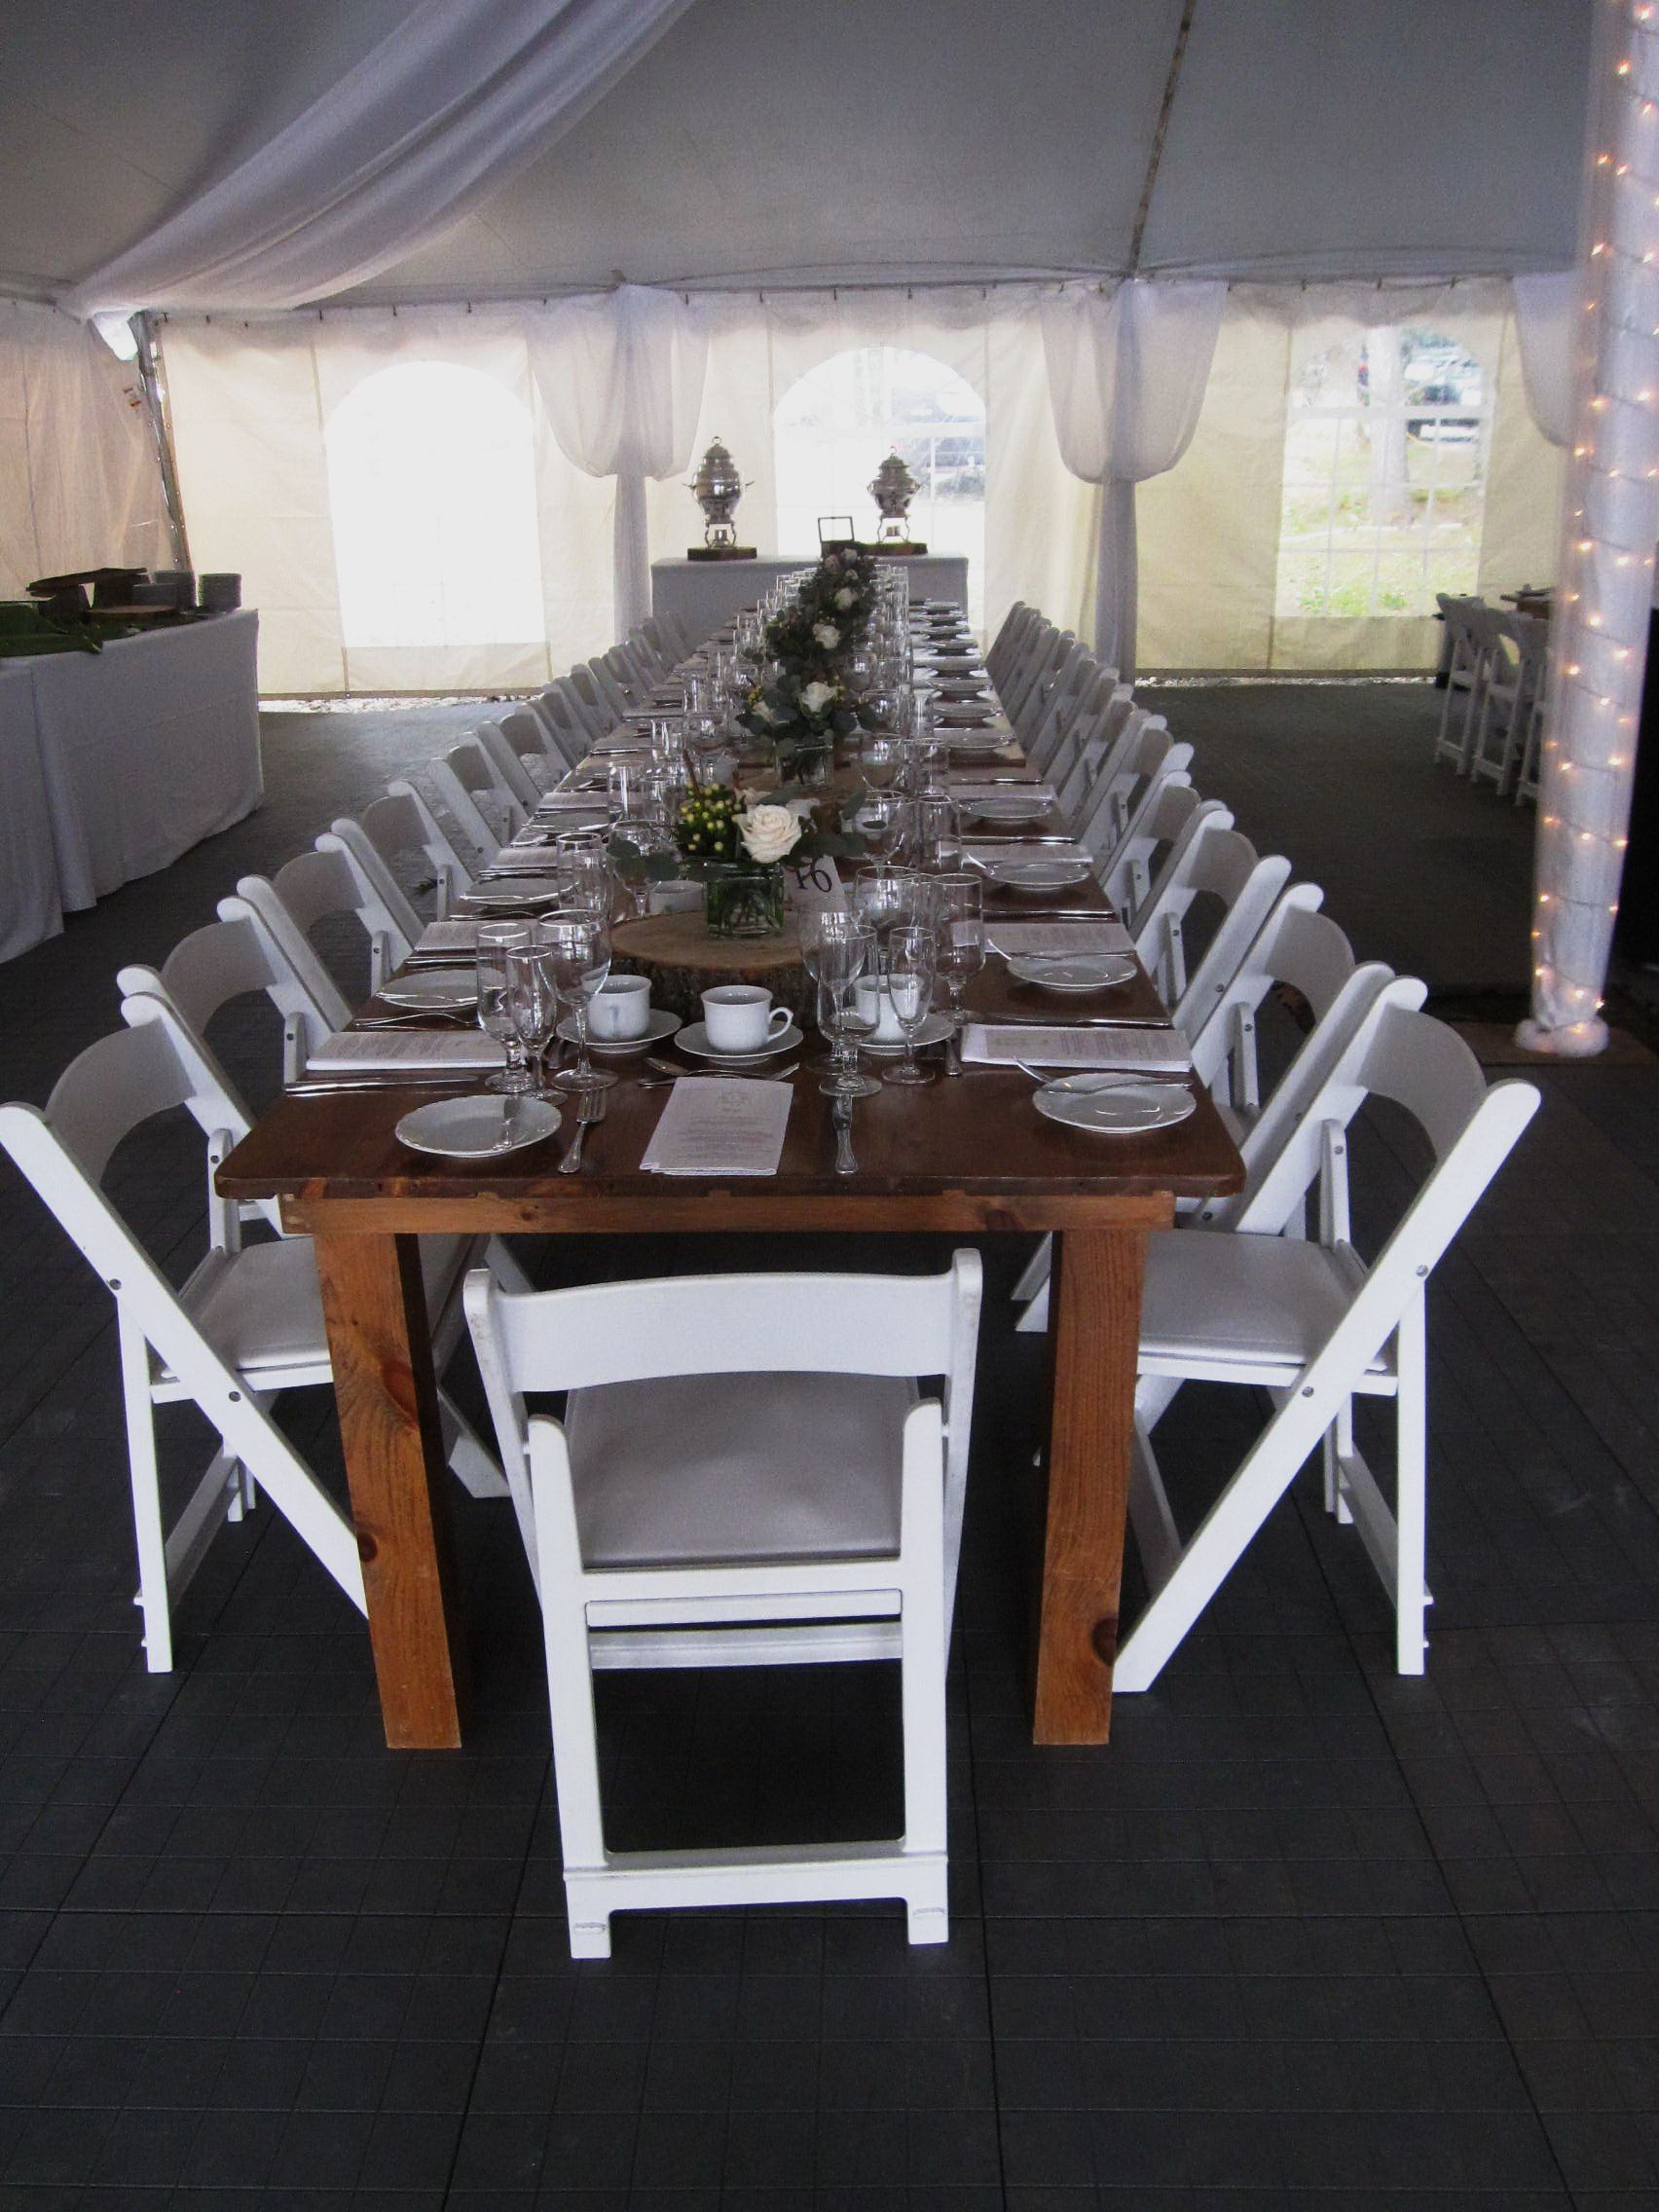 Harvest tables and white folding chairs